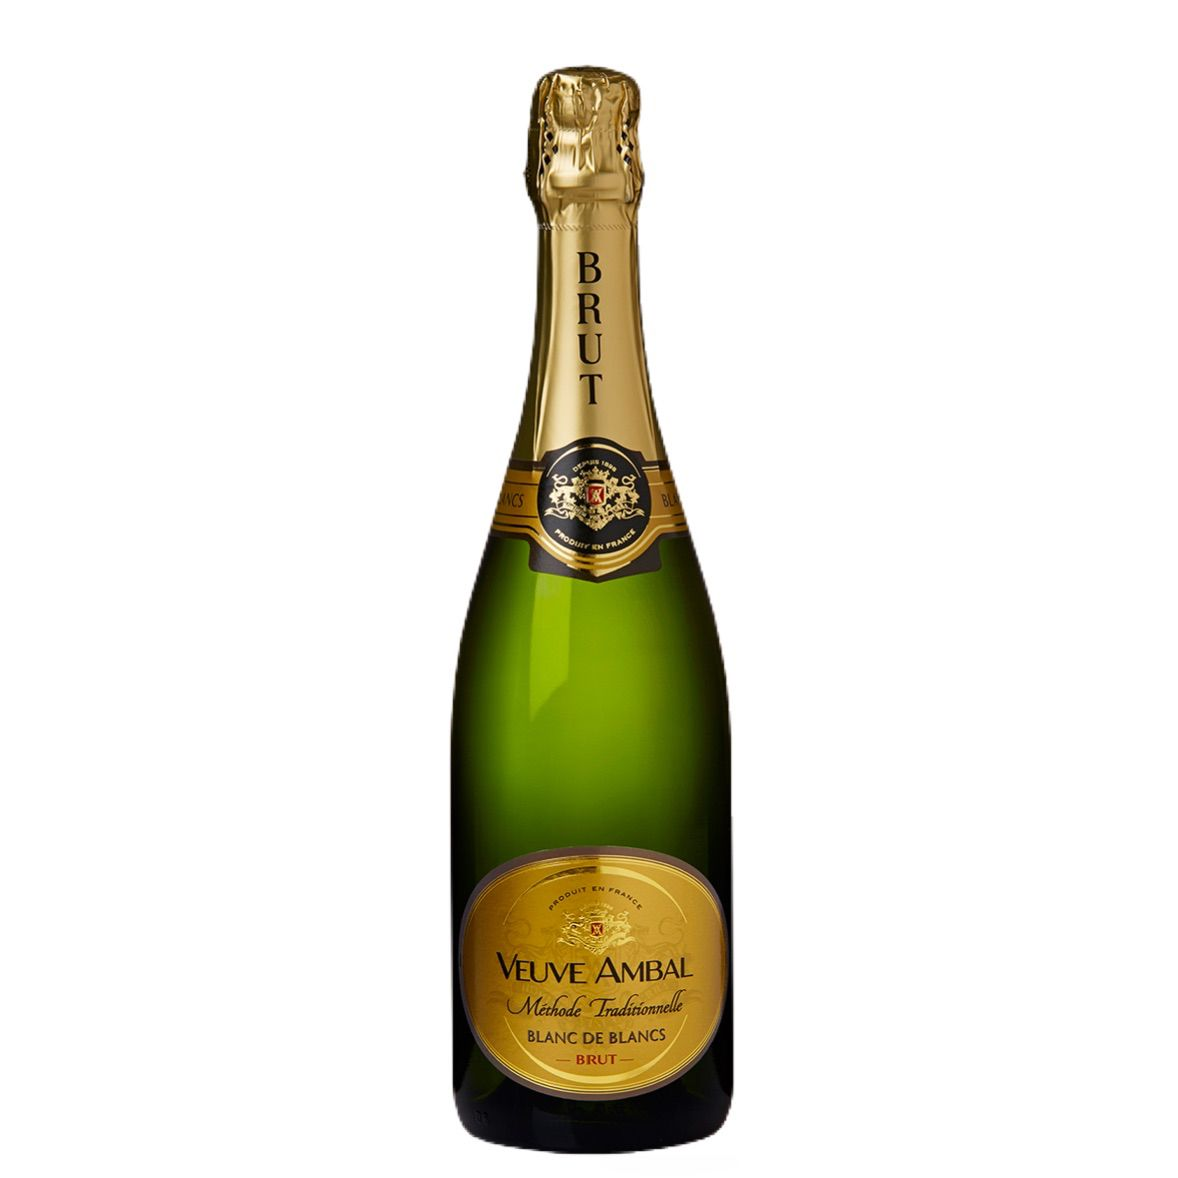 Veuve Ambal Méthode Traditionnelle Brut